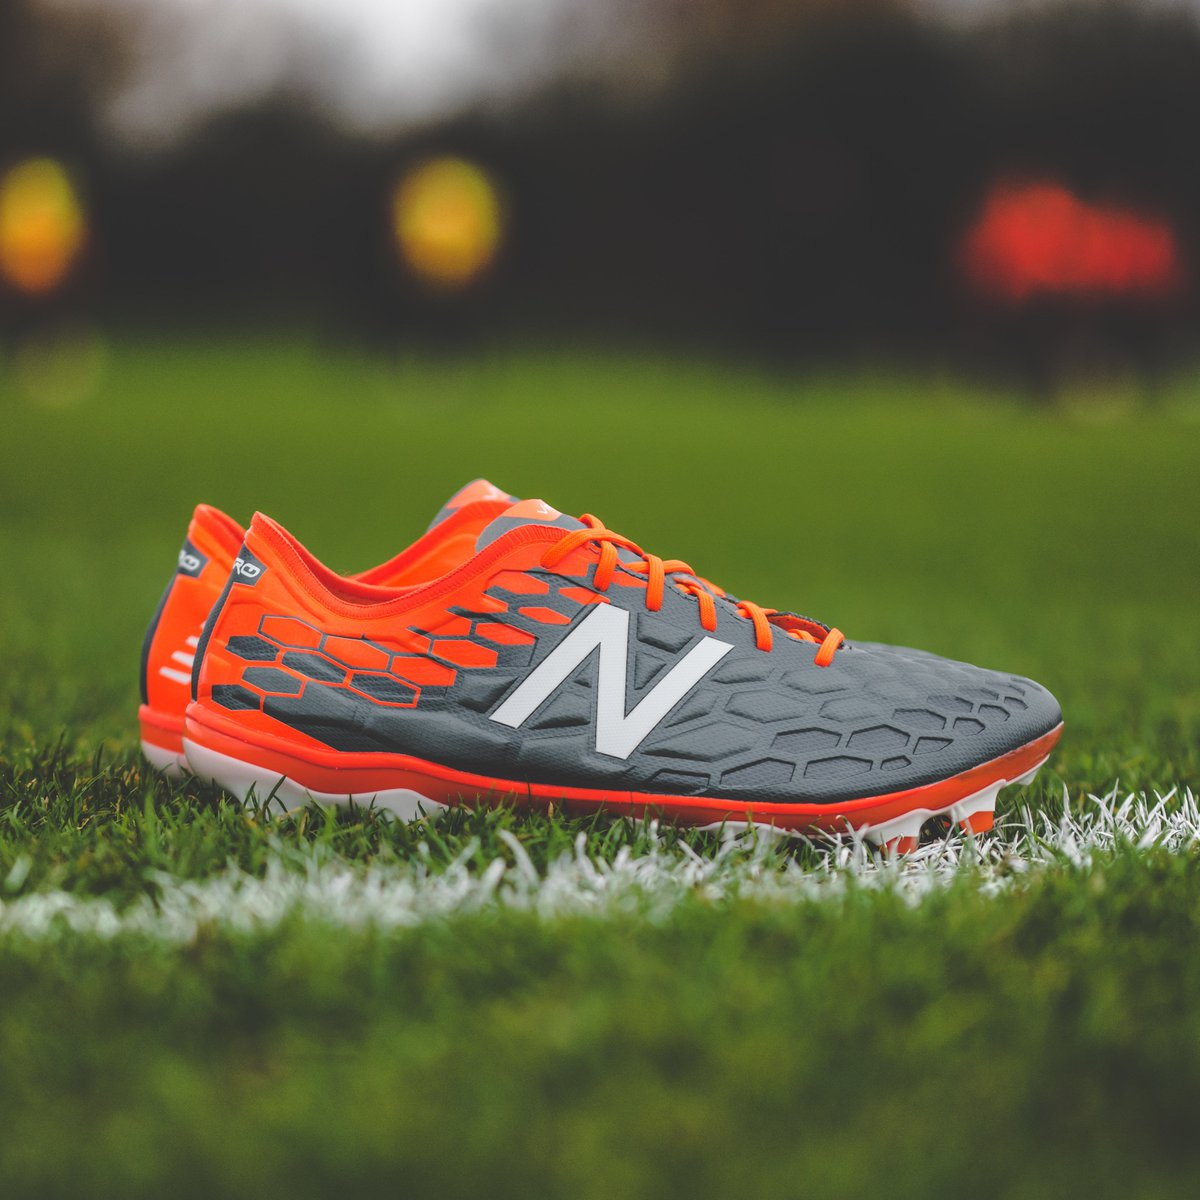 Take to the field for one reason only. To create. Introducing the brand new #Visaro. https://t.co/JF4yLnKiFV